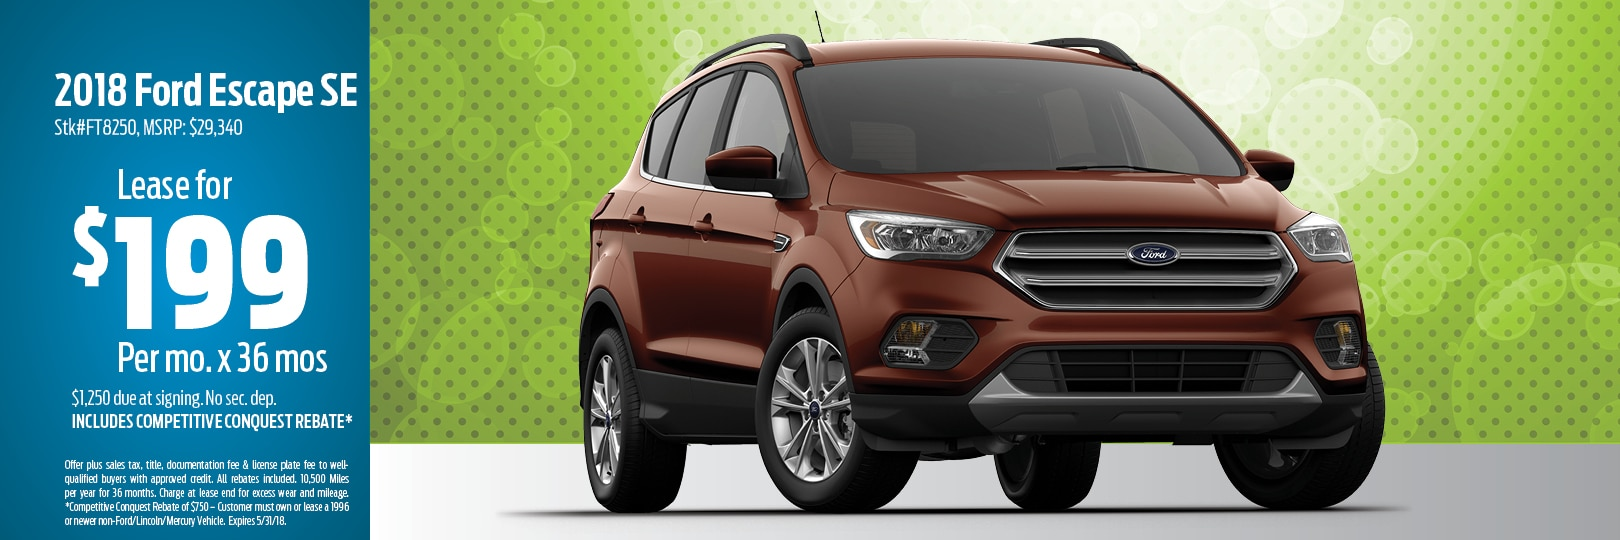 2018 Ford Escape Lease Deal in Muskegon, MI